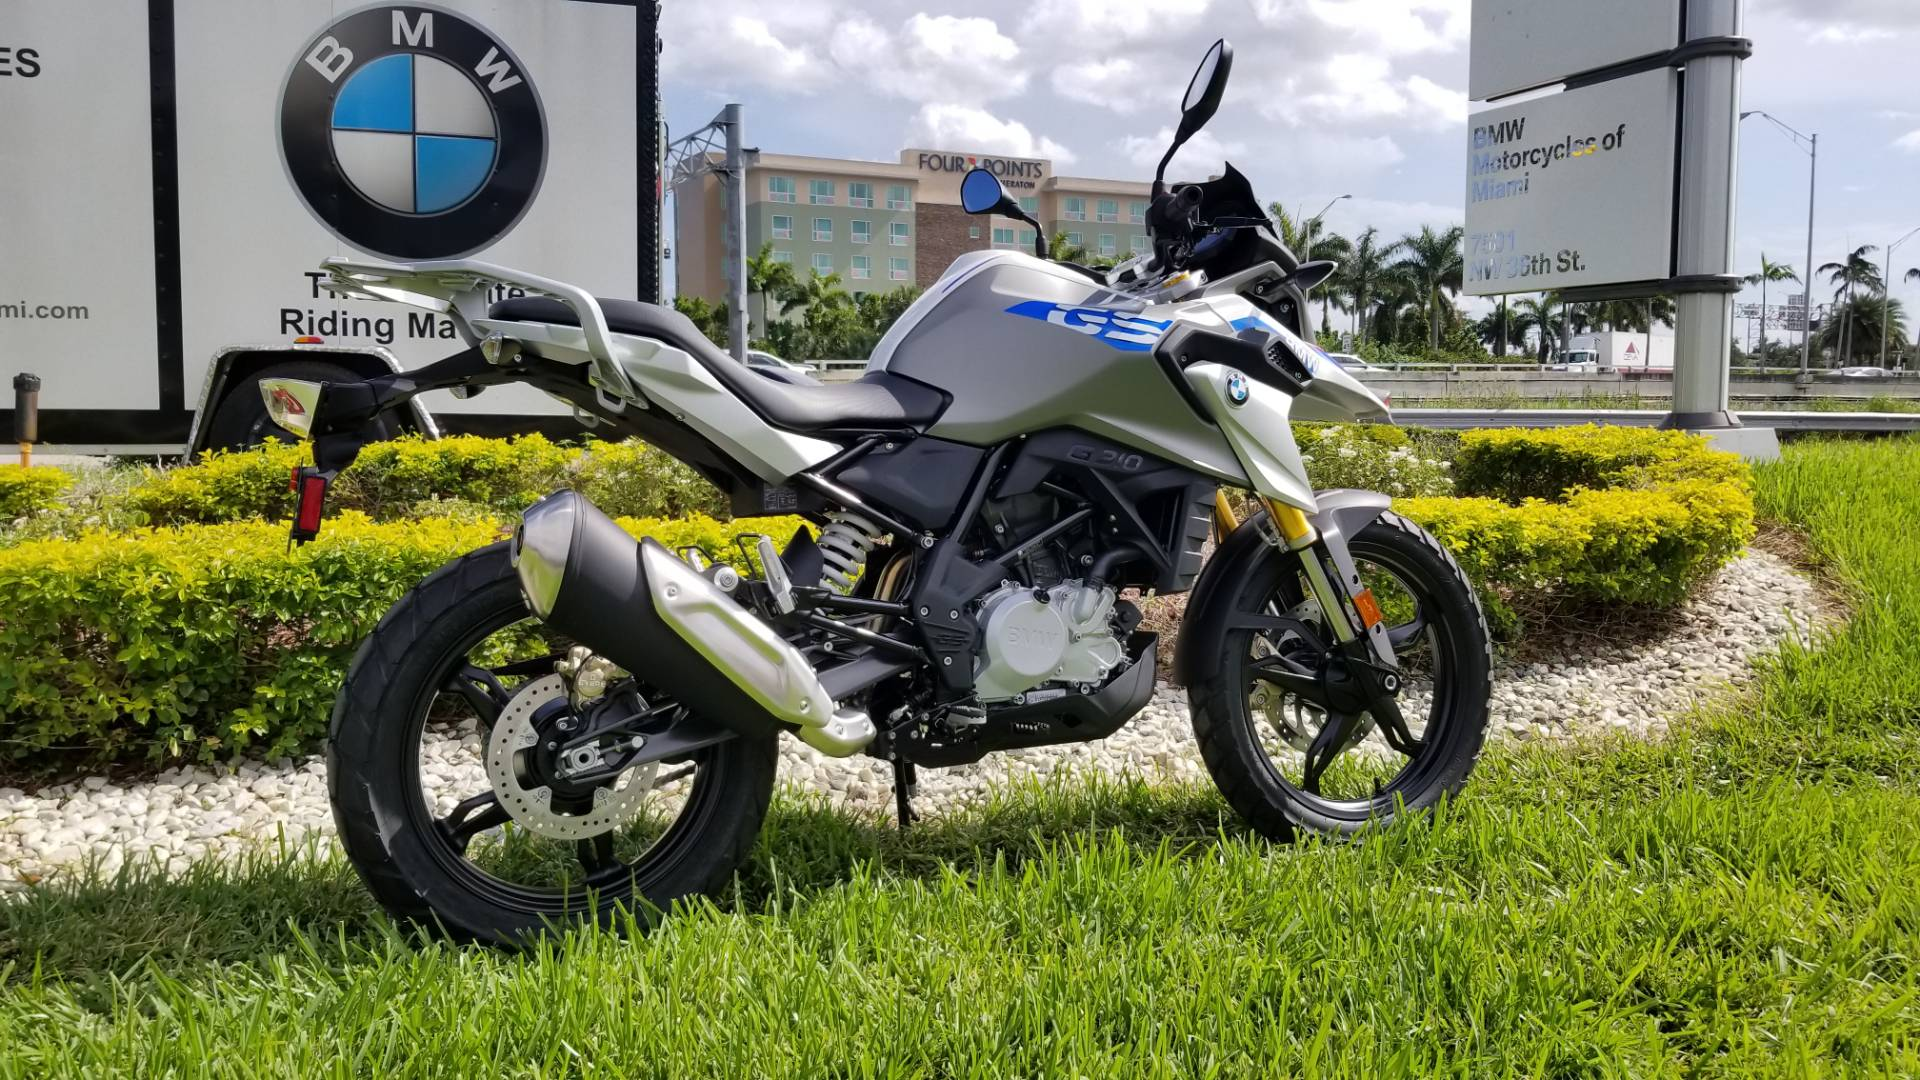 New 2019 BMW G 310 GS for sale, BMW G 310GS for sale, BMW Motorcycle G310GS, new BMW 310, Dual, BMW. BMW Motorcycles of Miami, Motorcycles of Miami, Motorcycles Miami, New Motorcycles, Used Motorcycles, pre-owned. #BMWMotorcyclesOfMiami #MotorcyclesOfMiami - Photo 14